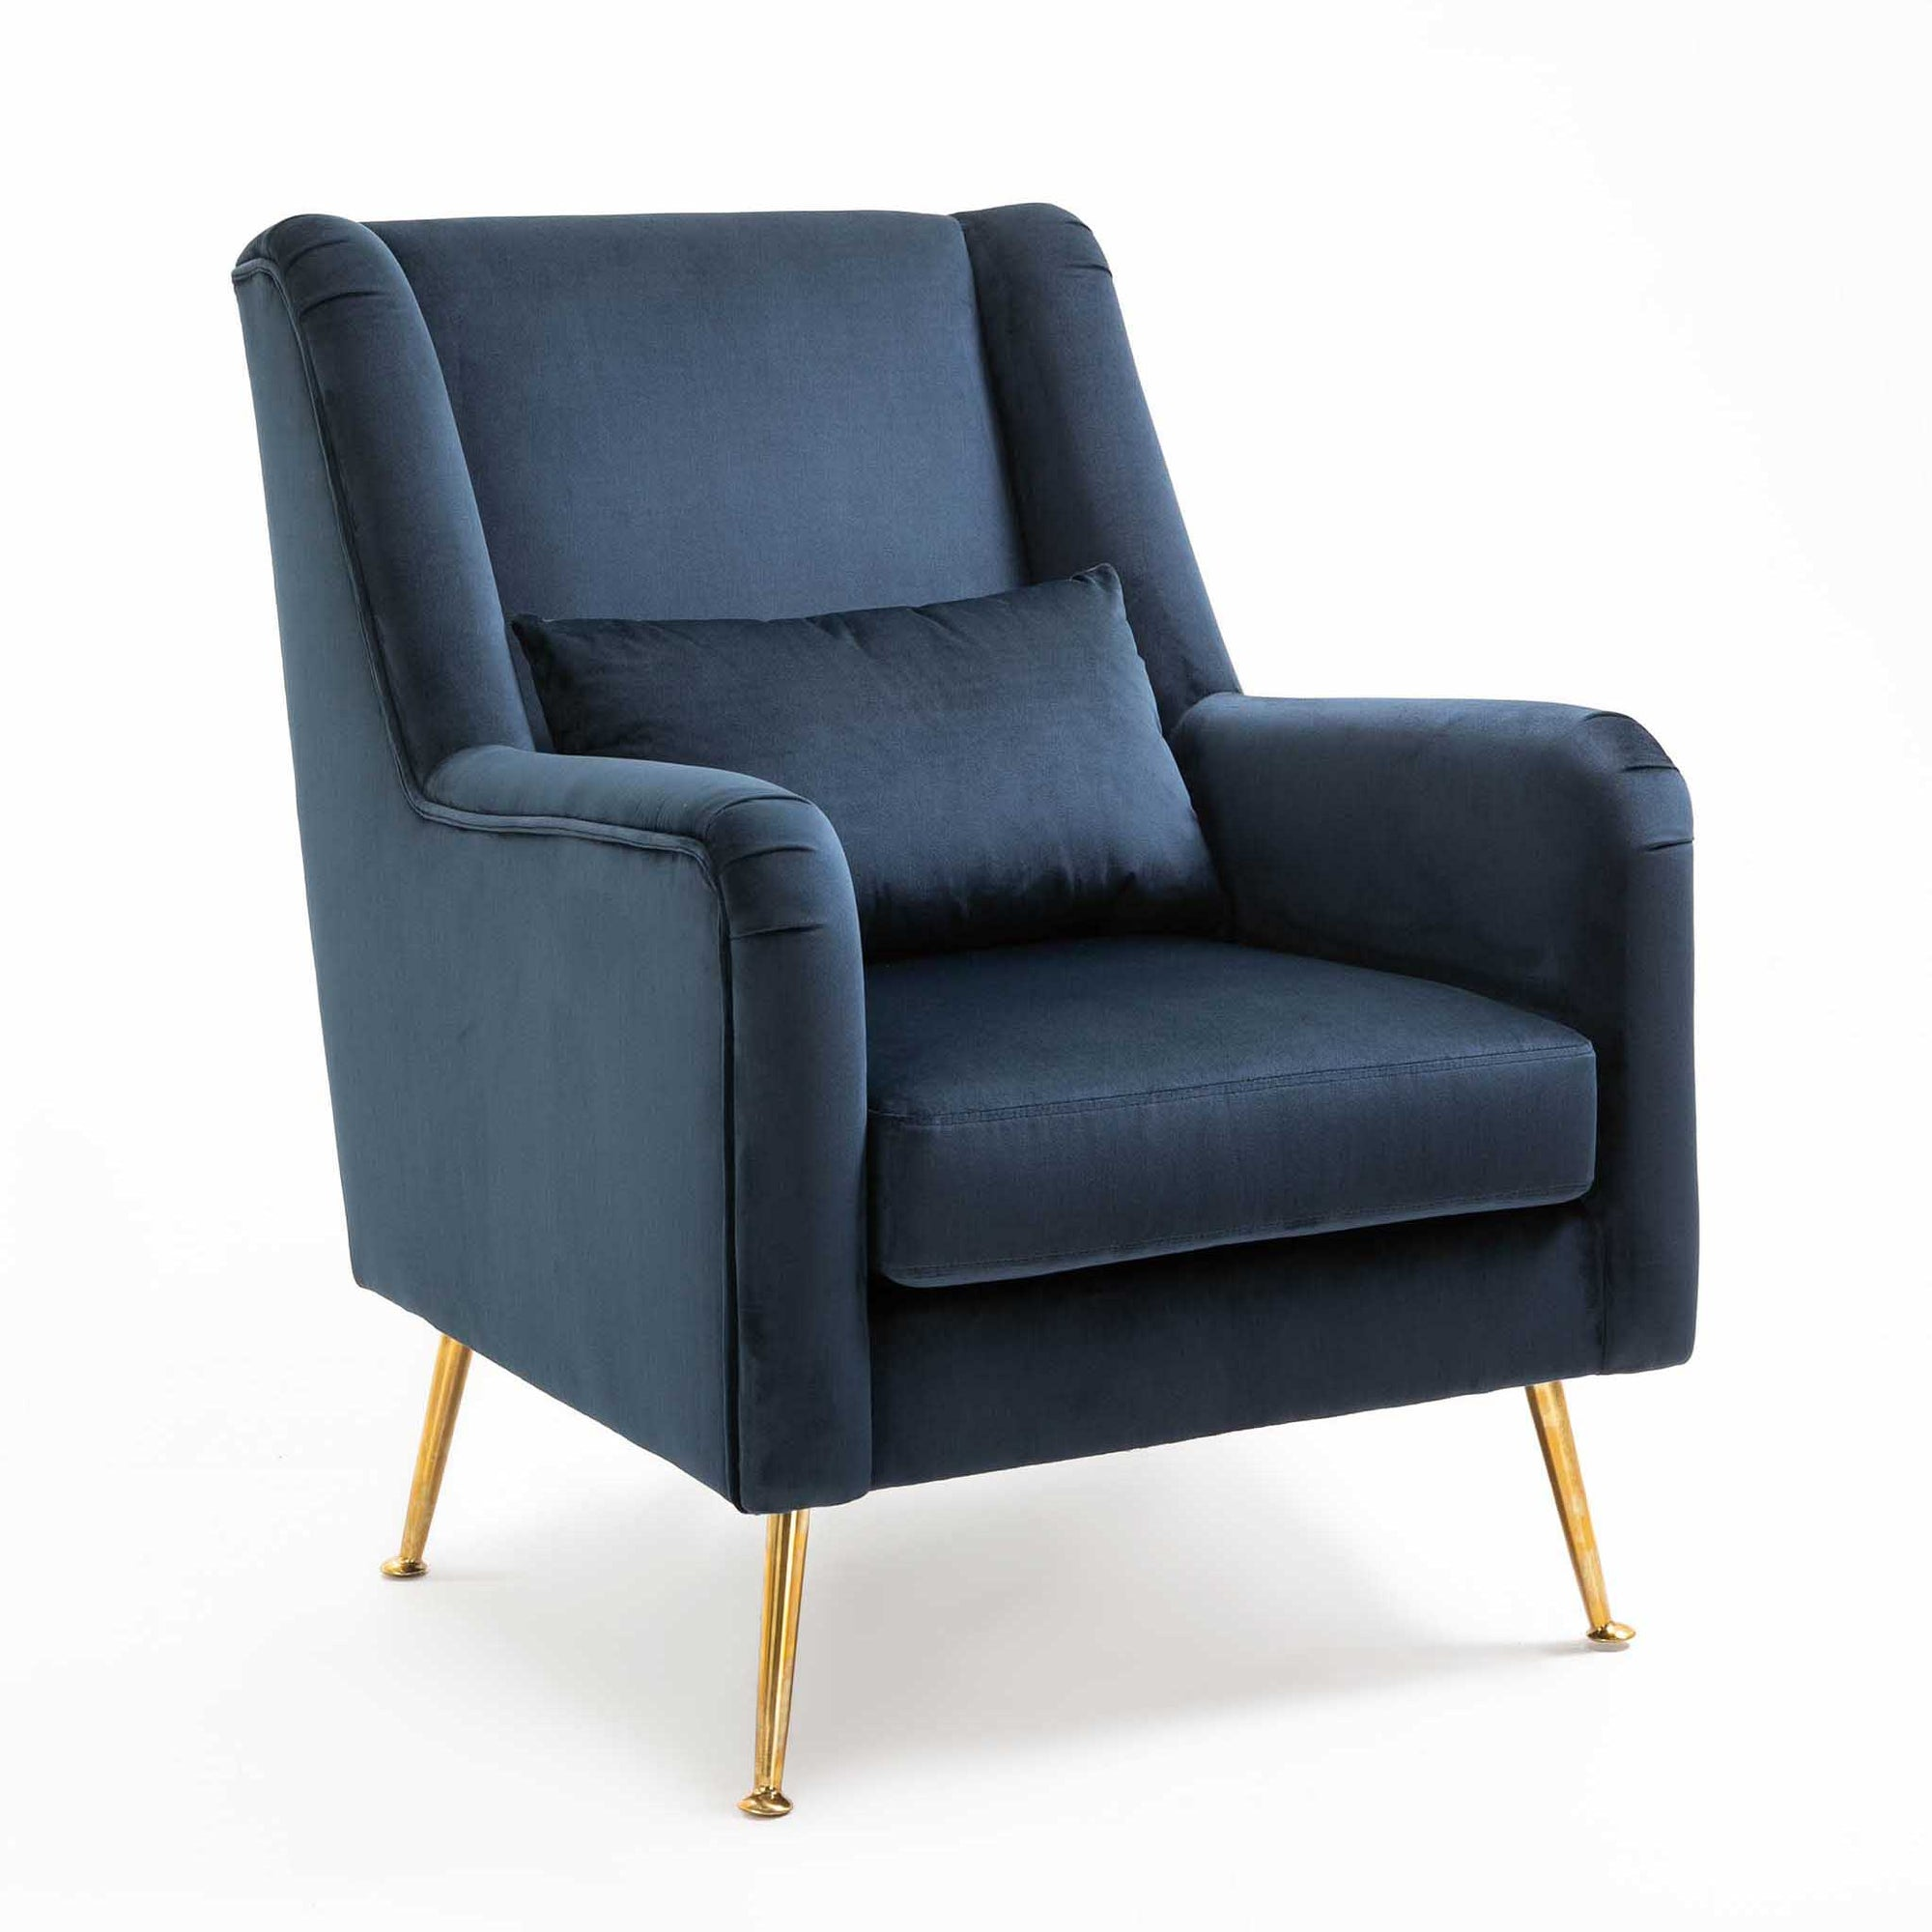 Mia Blue Velvet Wingback Armchair from Roseland Furniture